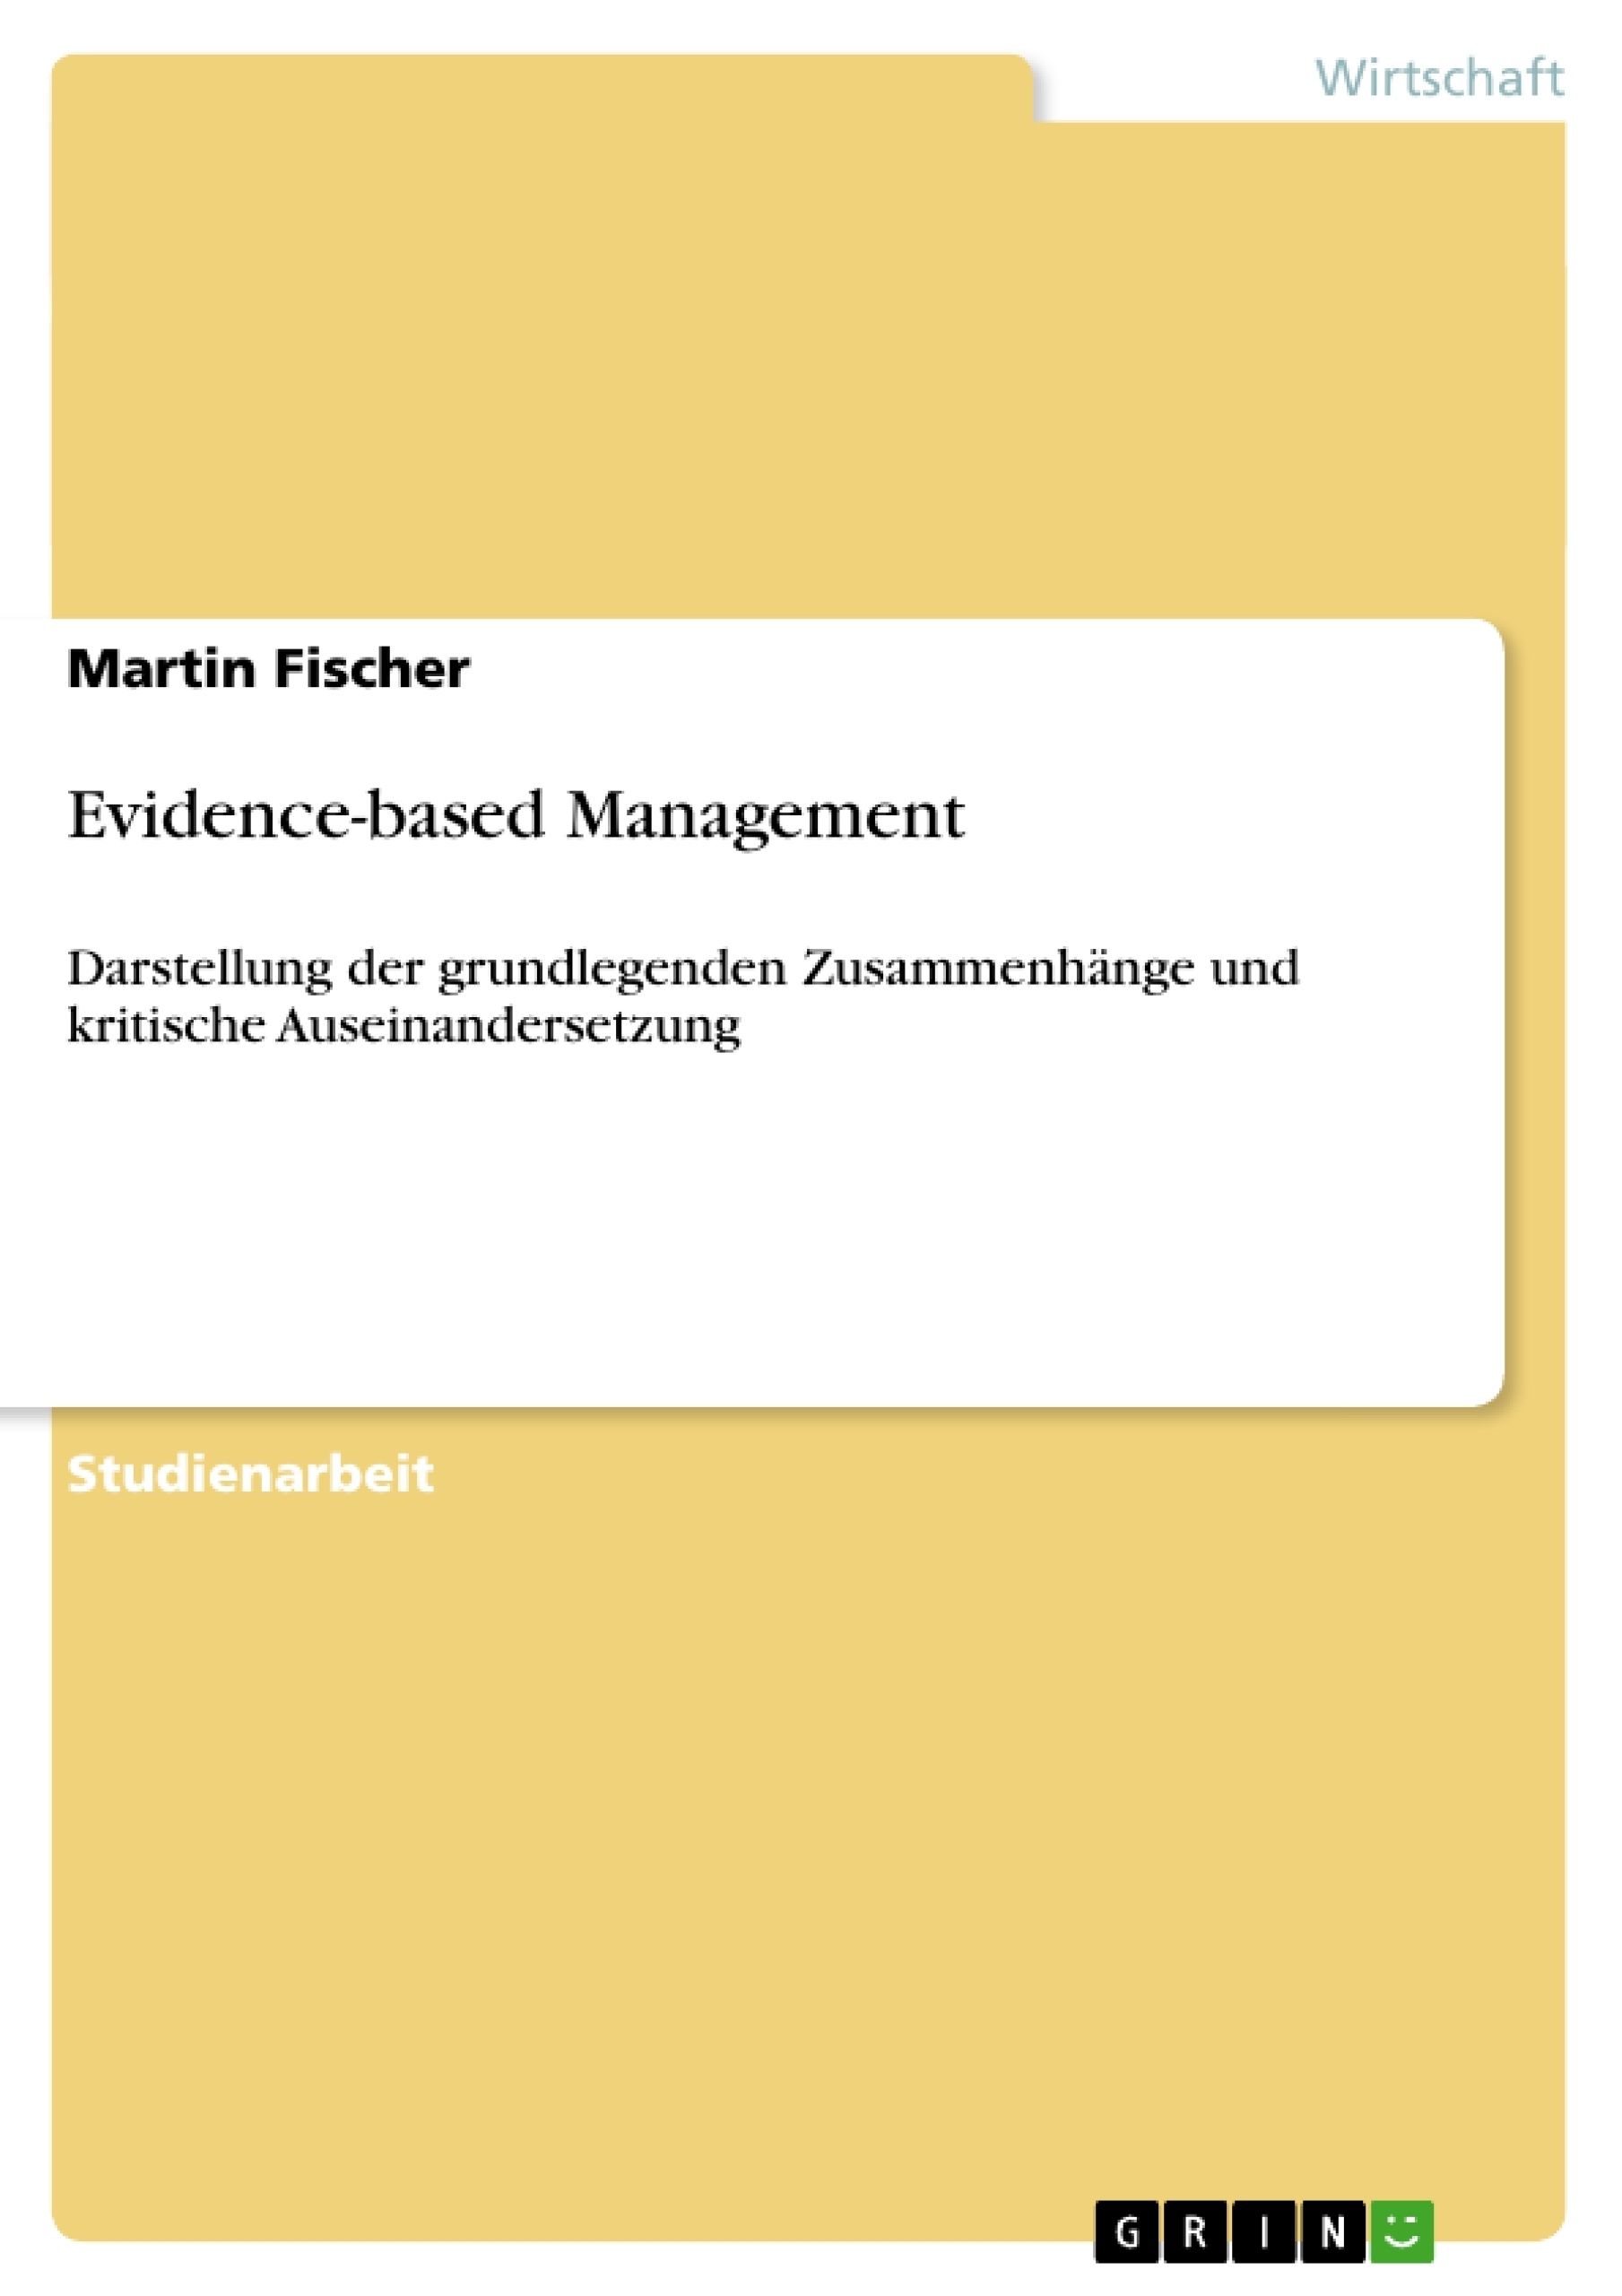 Titel: Evidence-based Management